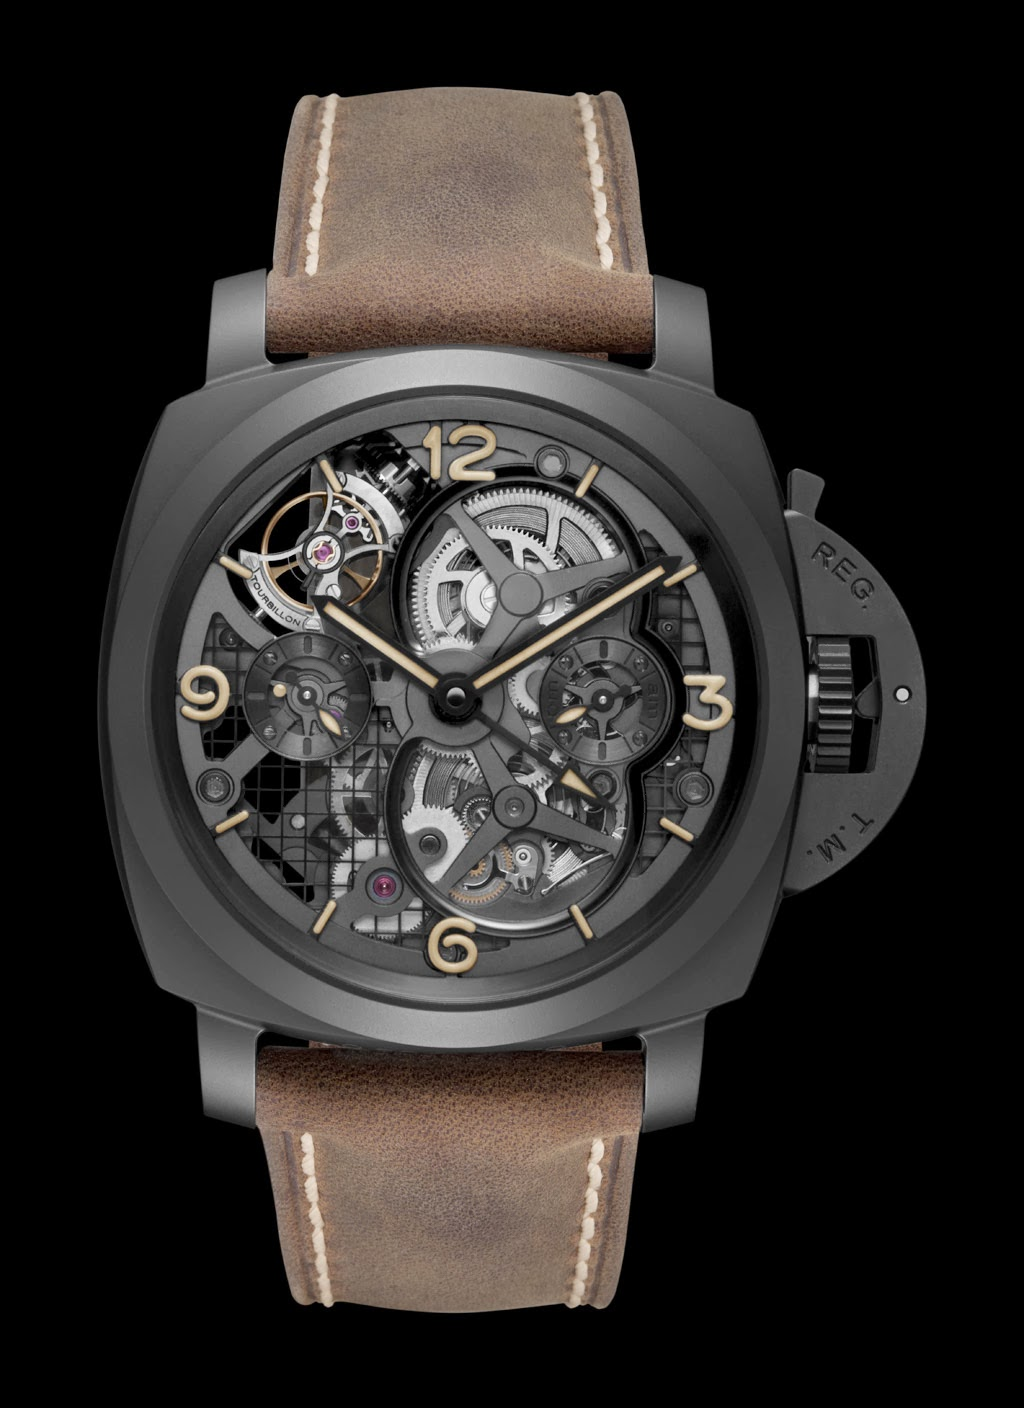 Officine Panerai Luminor 1950 Tourbillon Gmt Ceramica